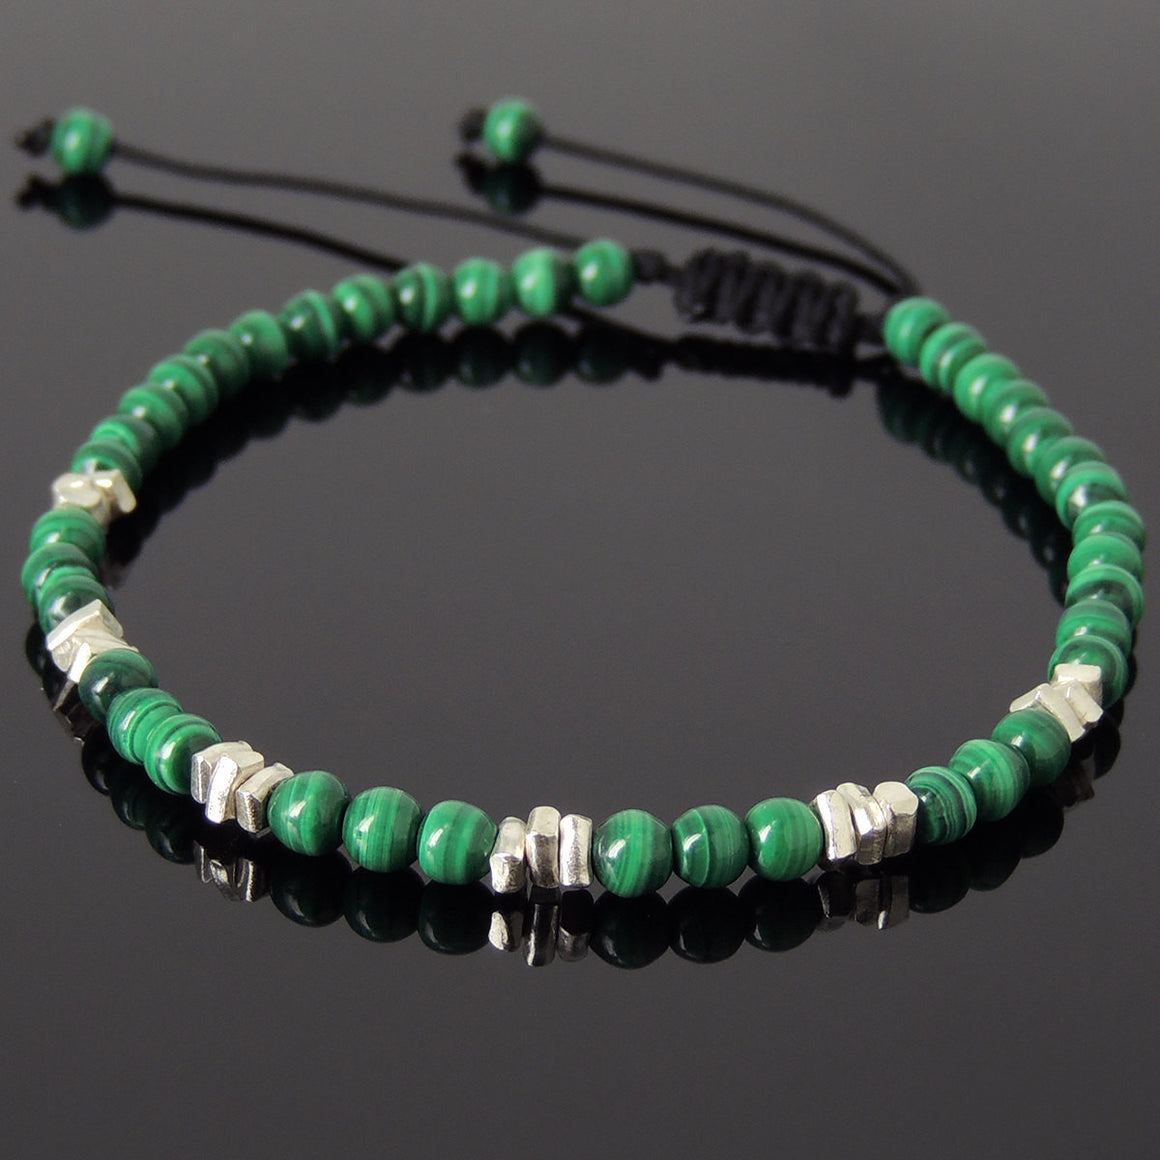 4mm Malachite Adjustable Braided Gemstone Bracelet with S925 Sterling Silver Nugget Beads DiyNotion BR951